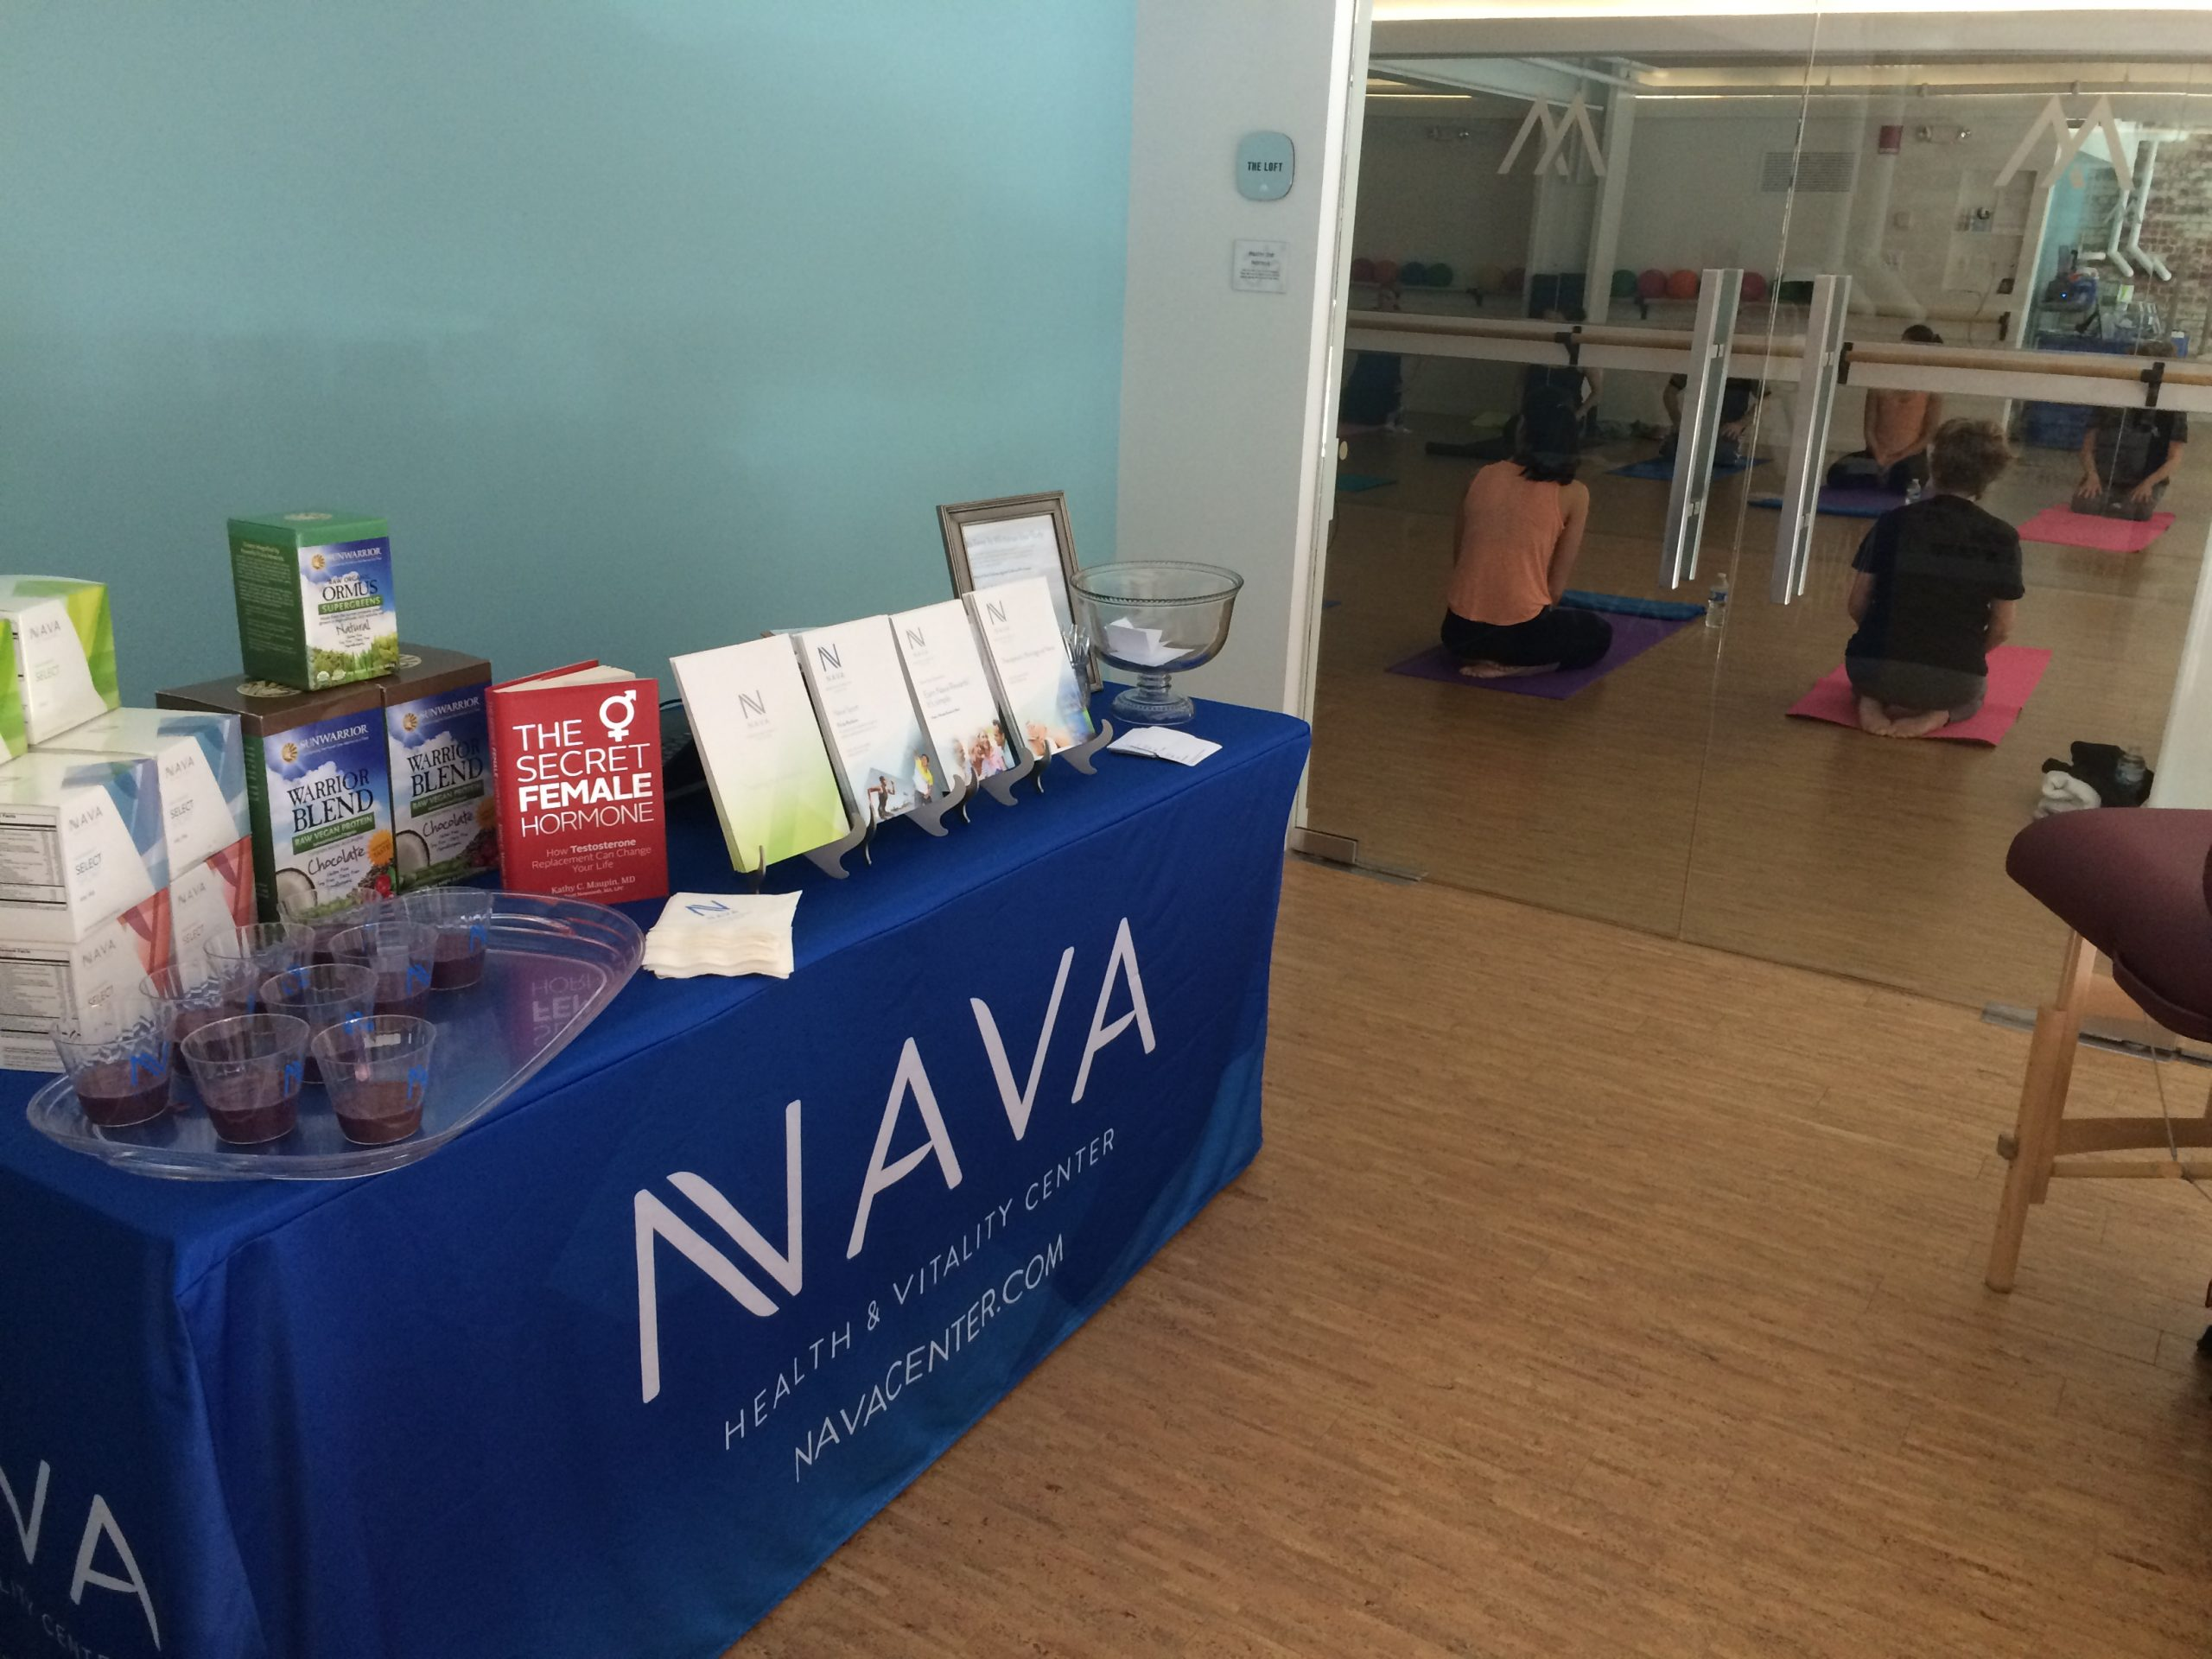 Nava Center | Nava Health & Vitality Center